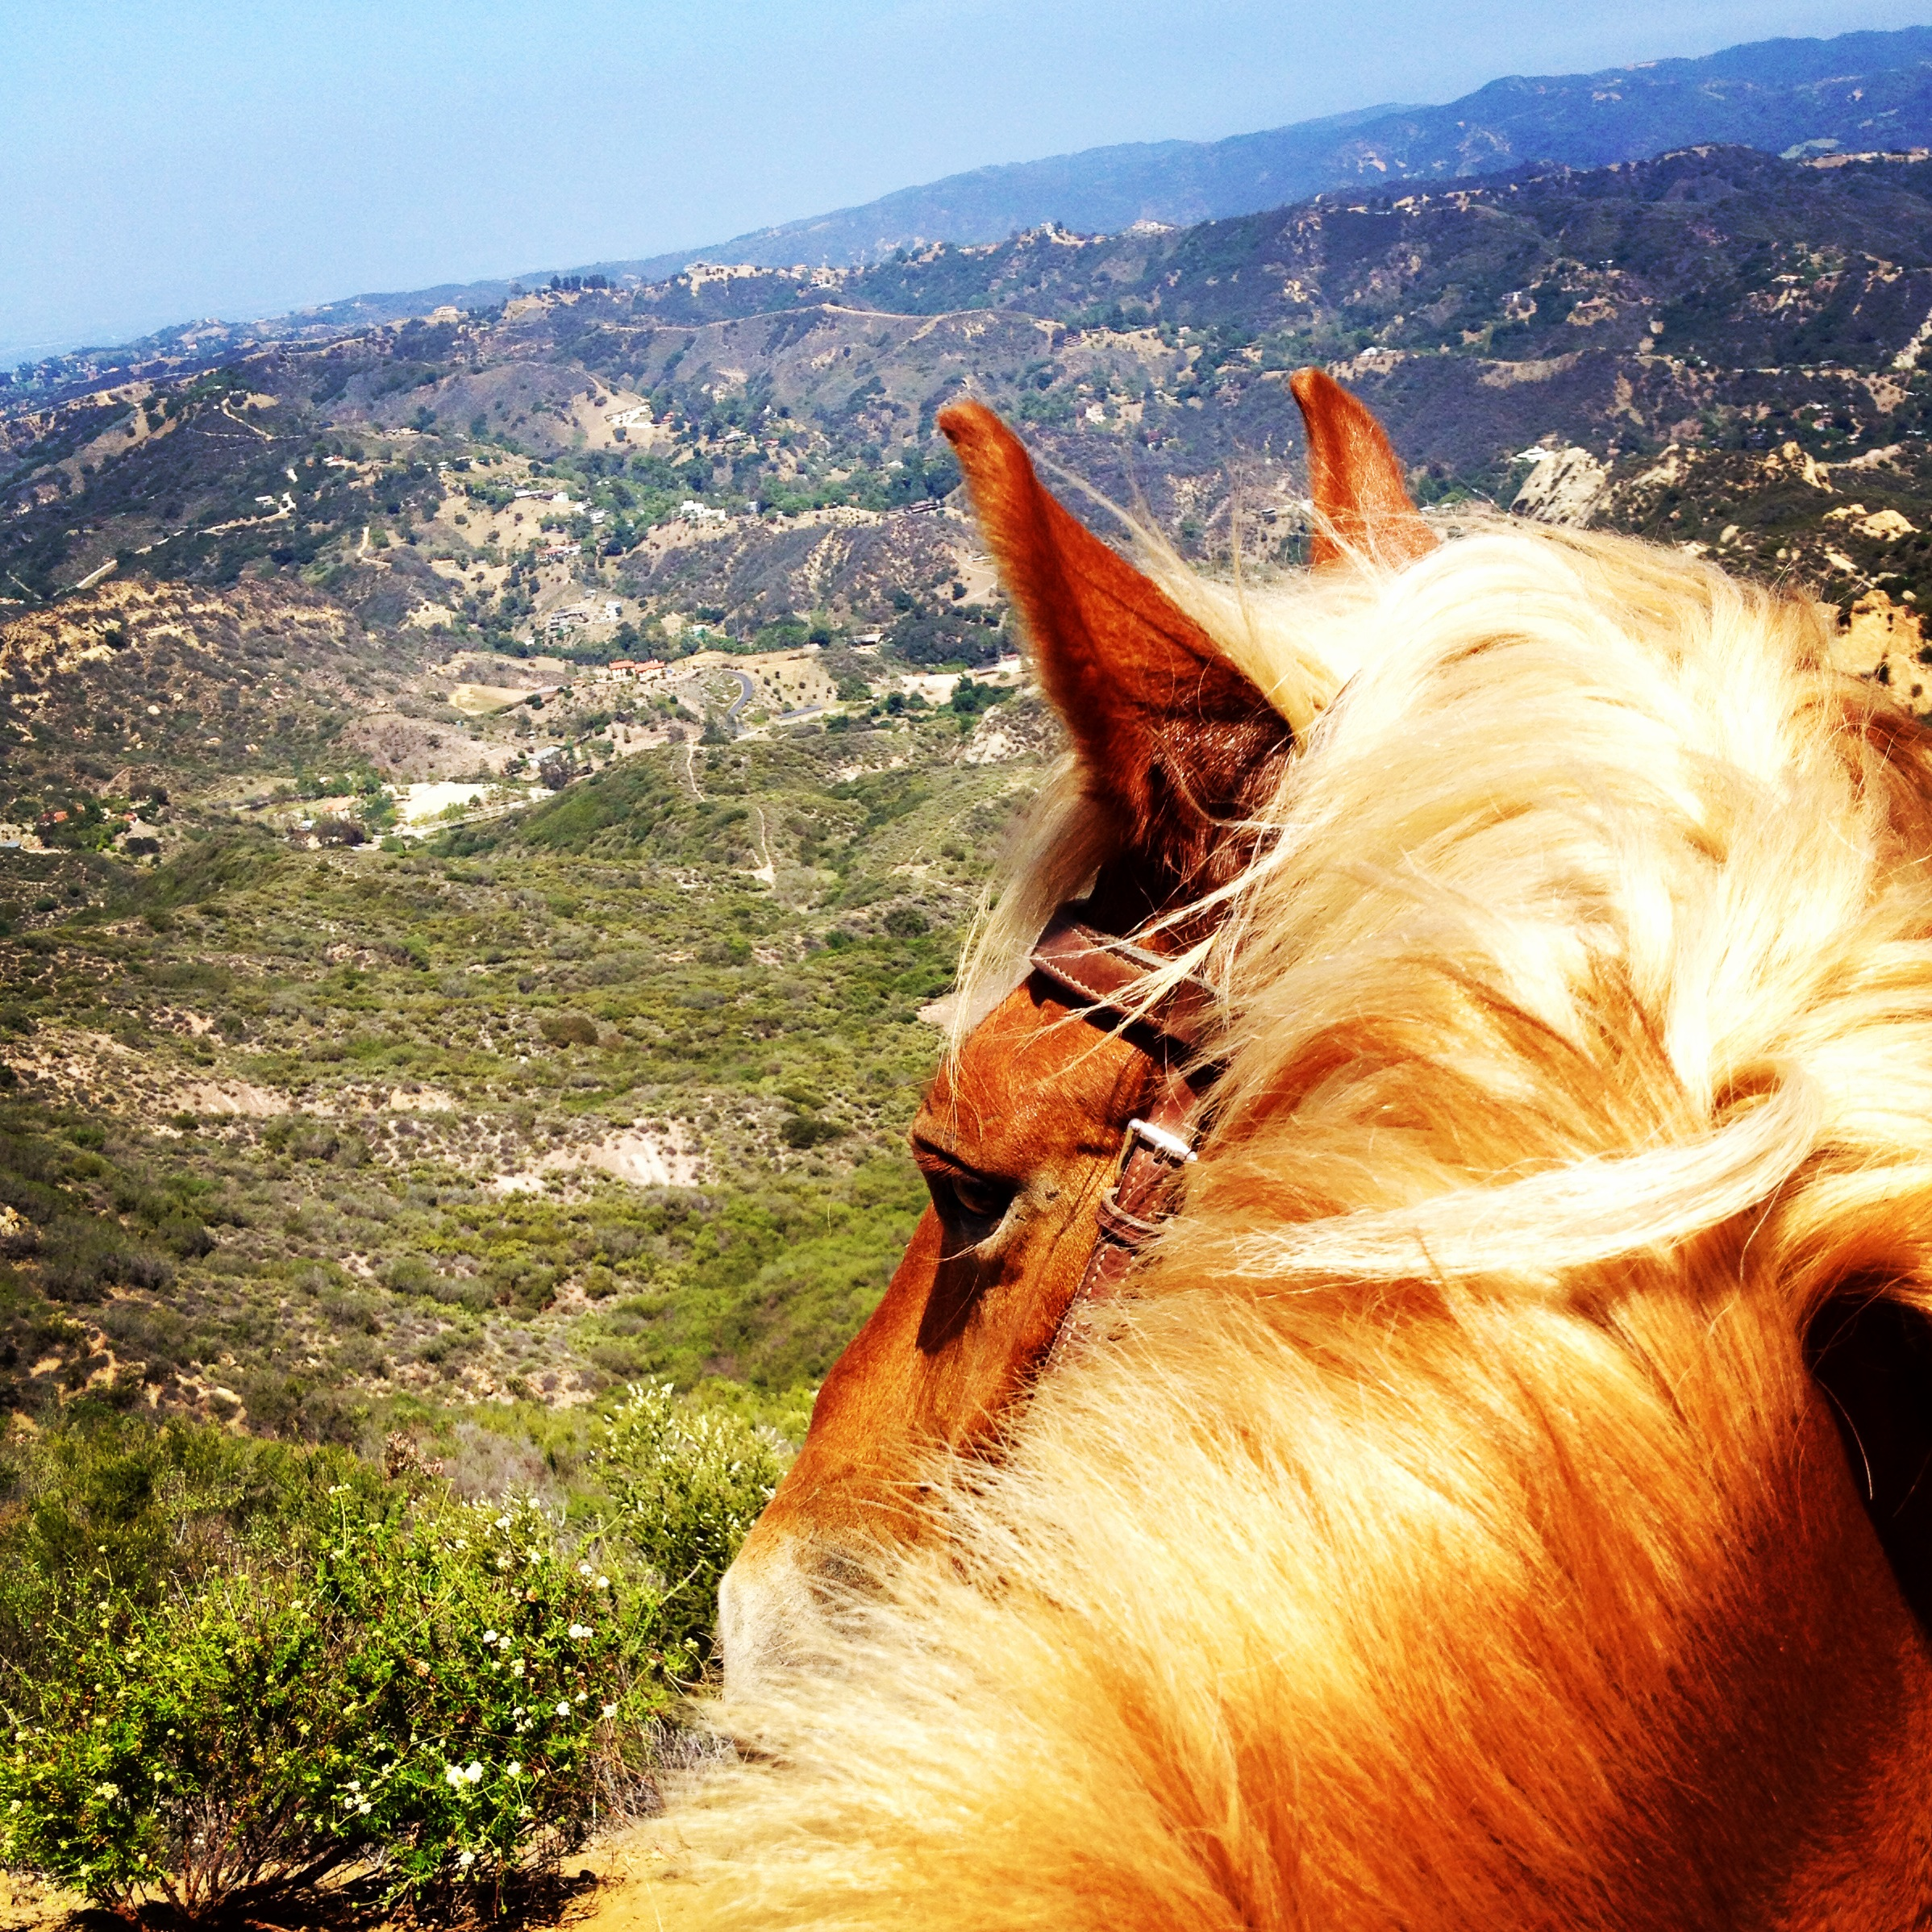 Voted The Most Beautiful Place To Trail Ride In Los Angeles By Magazine